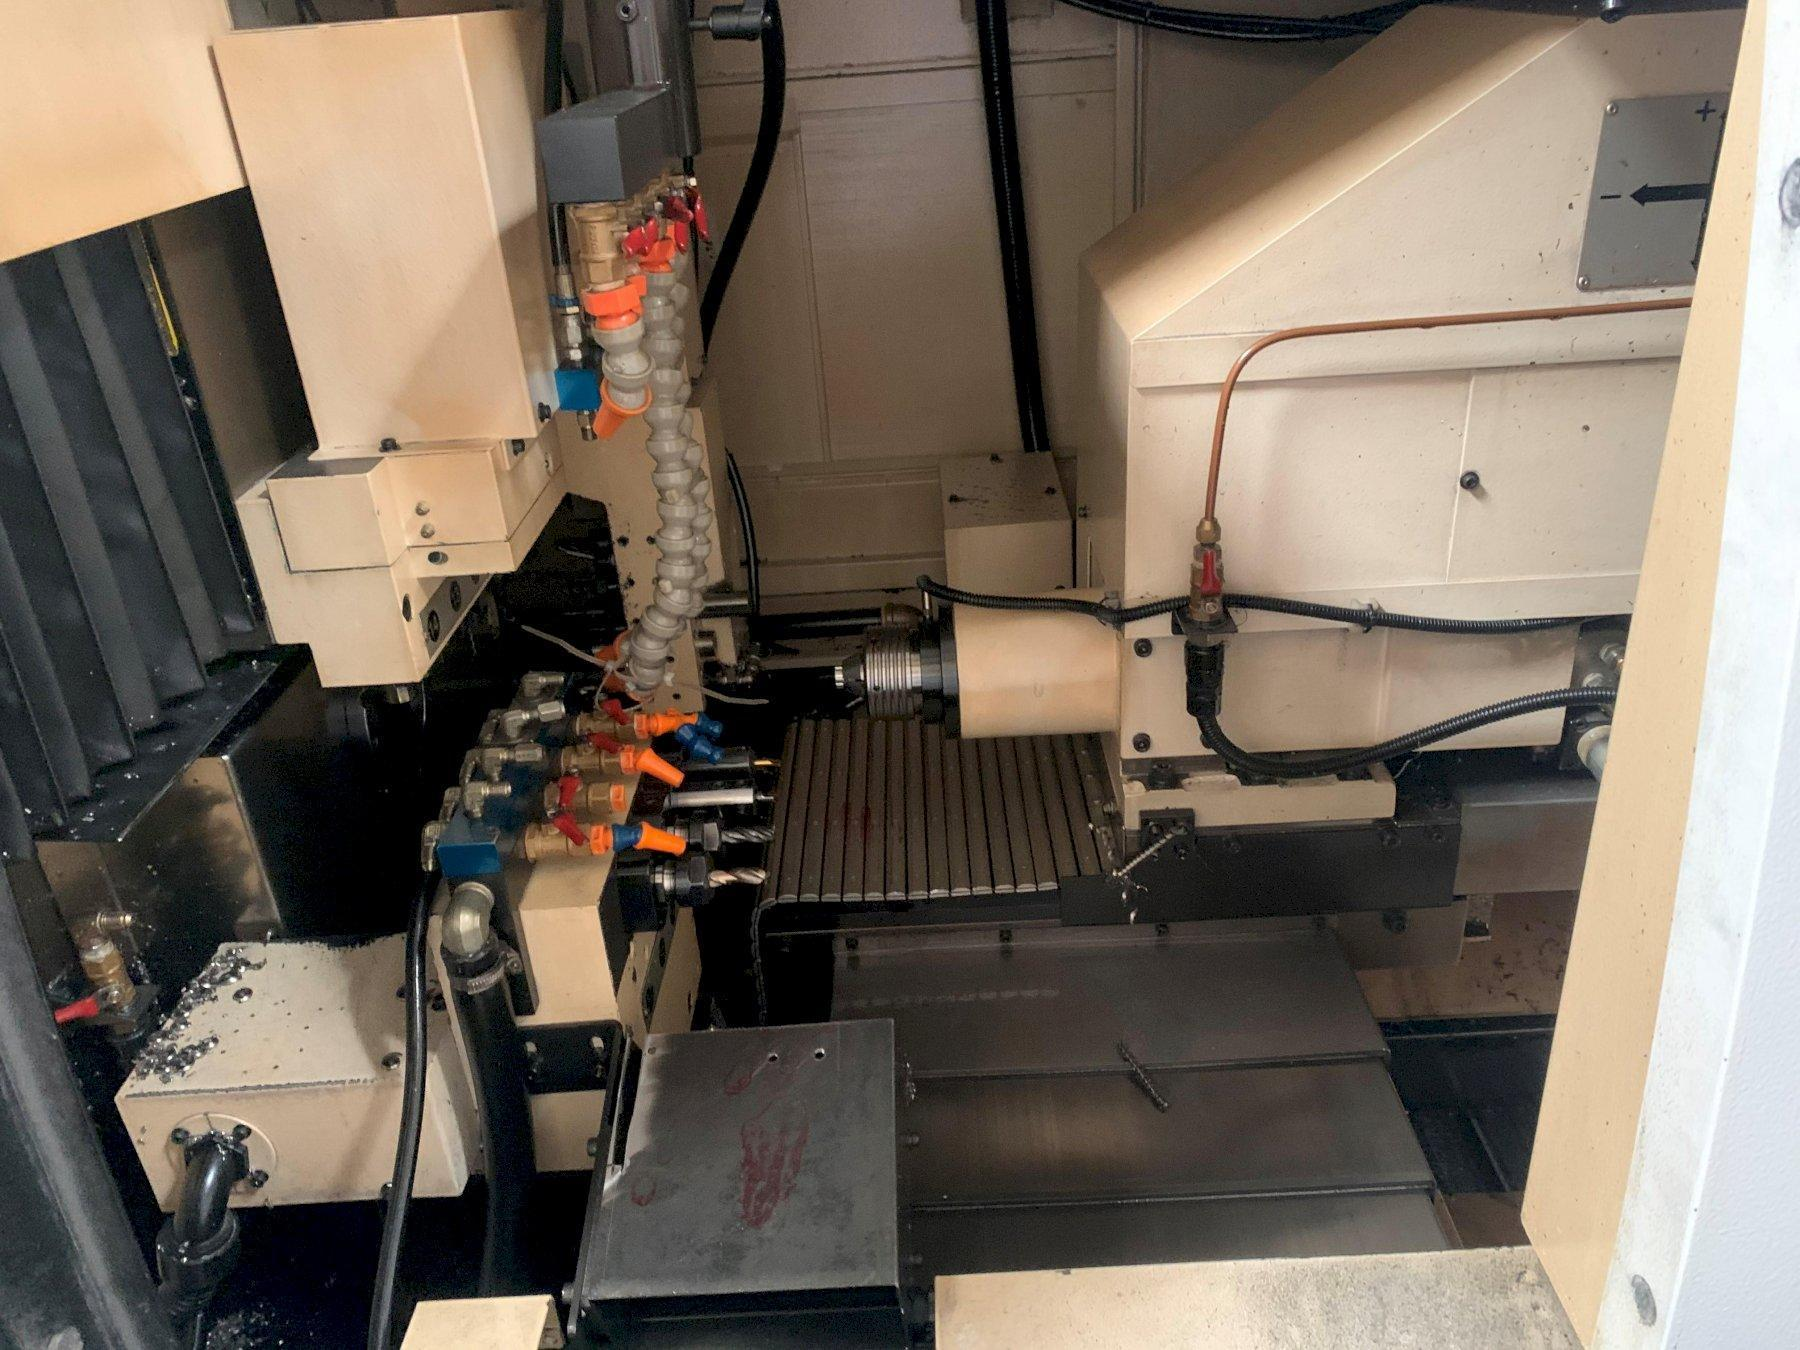 Ganesh Cyclone 32CS CNC Swiss Lathe with: Edge Technologies Patriot 338 Bar Feeder, Mist Buster, and Parts Catcher.